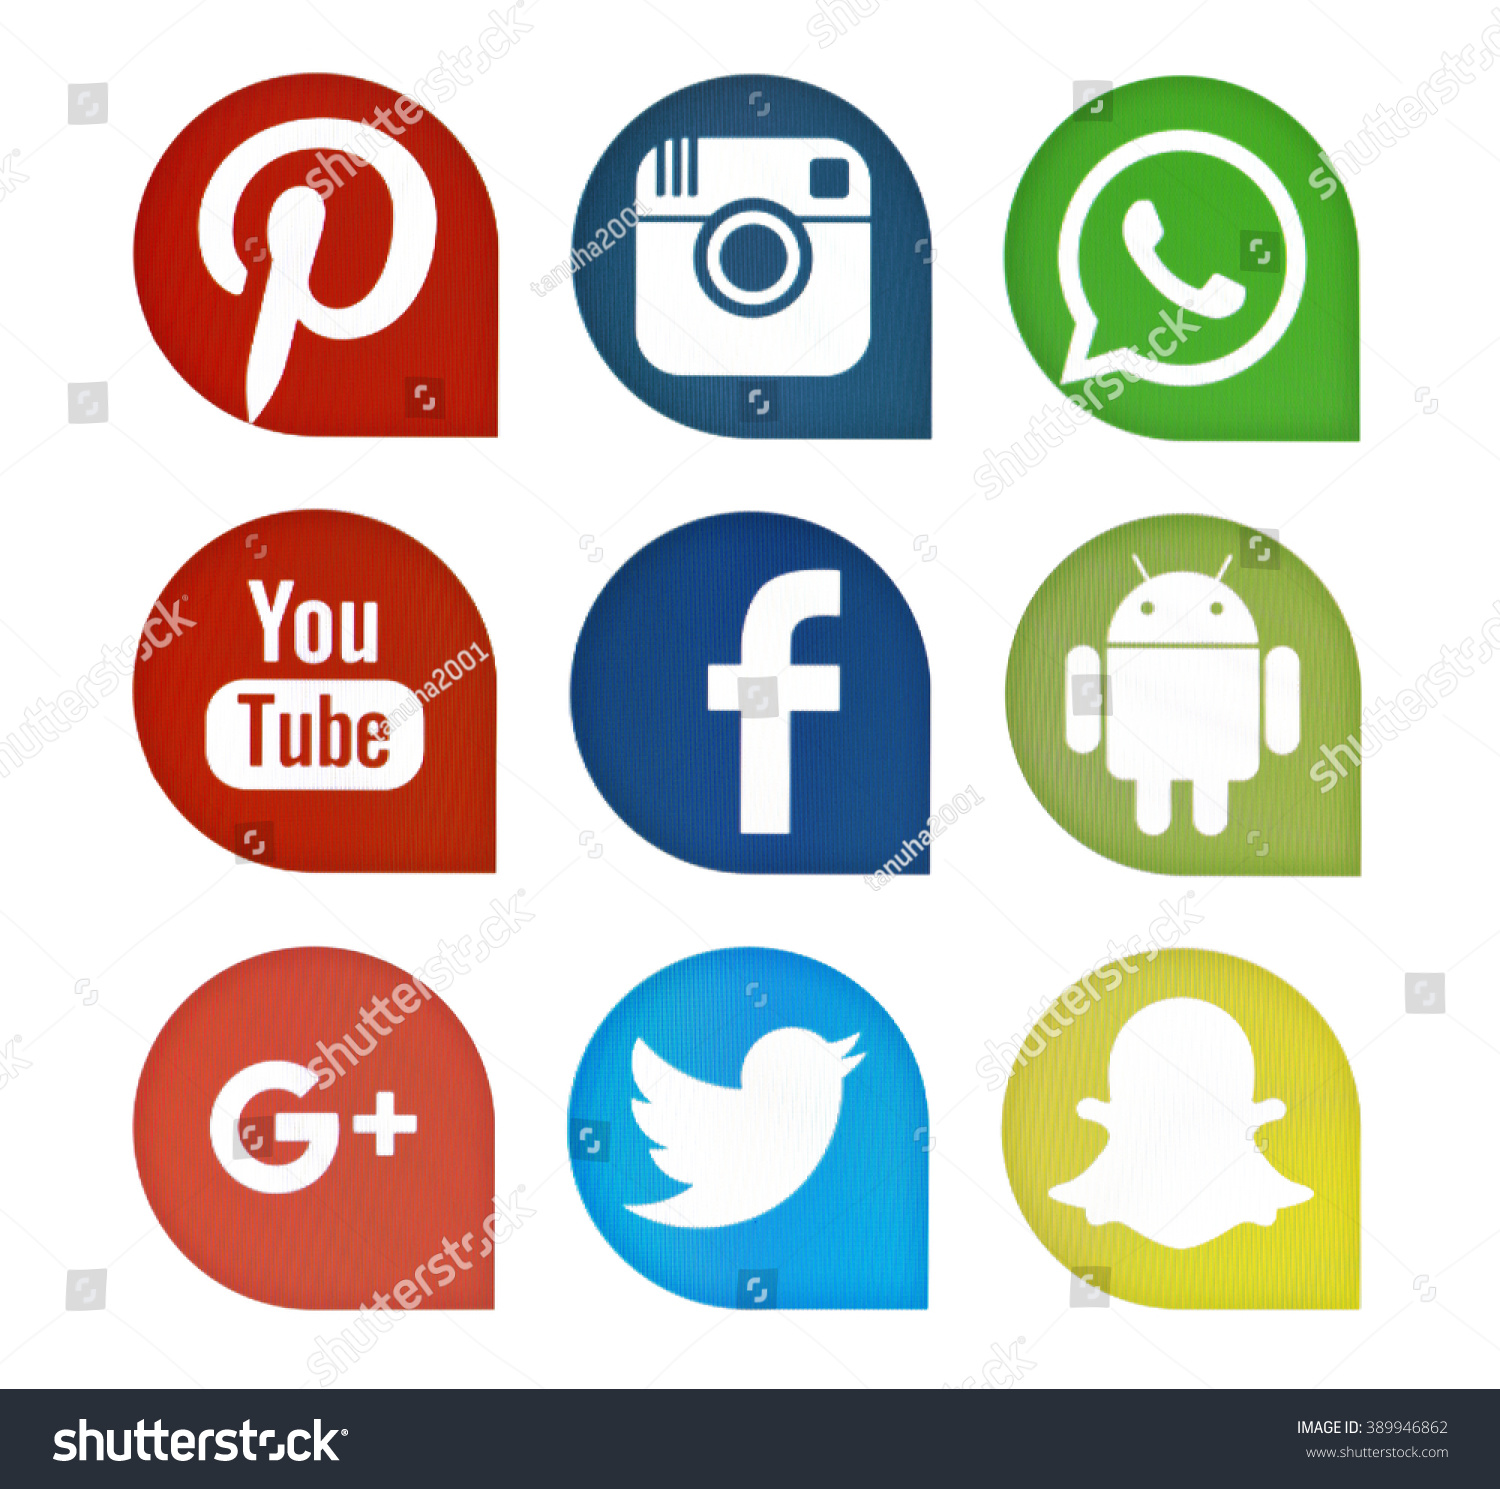 facebook as a global social media Social media update 2016 facebook usage and engagement is on the rise, while adoption of other platforms holds steady by shannon greenwood , andrew perrin and maeve duggan.